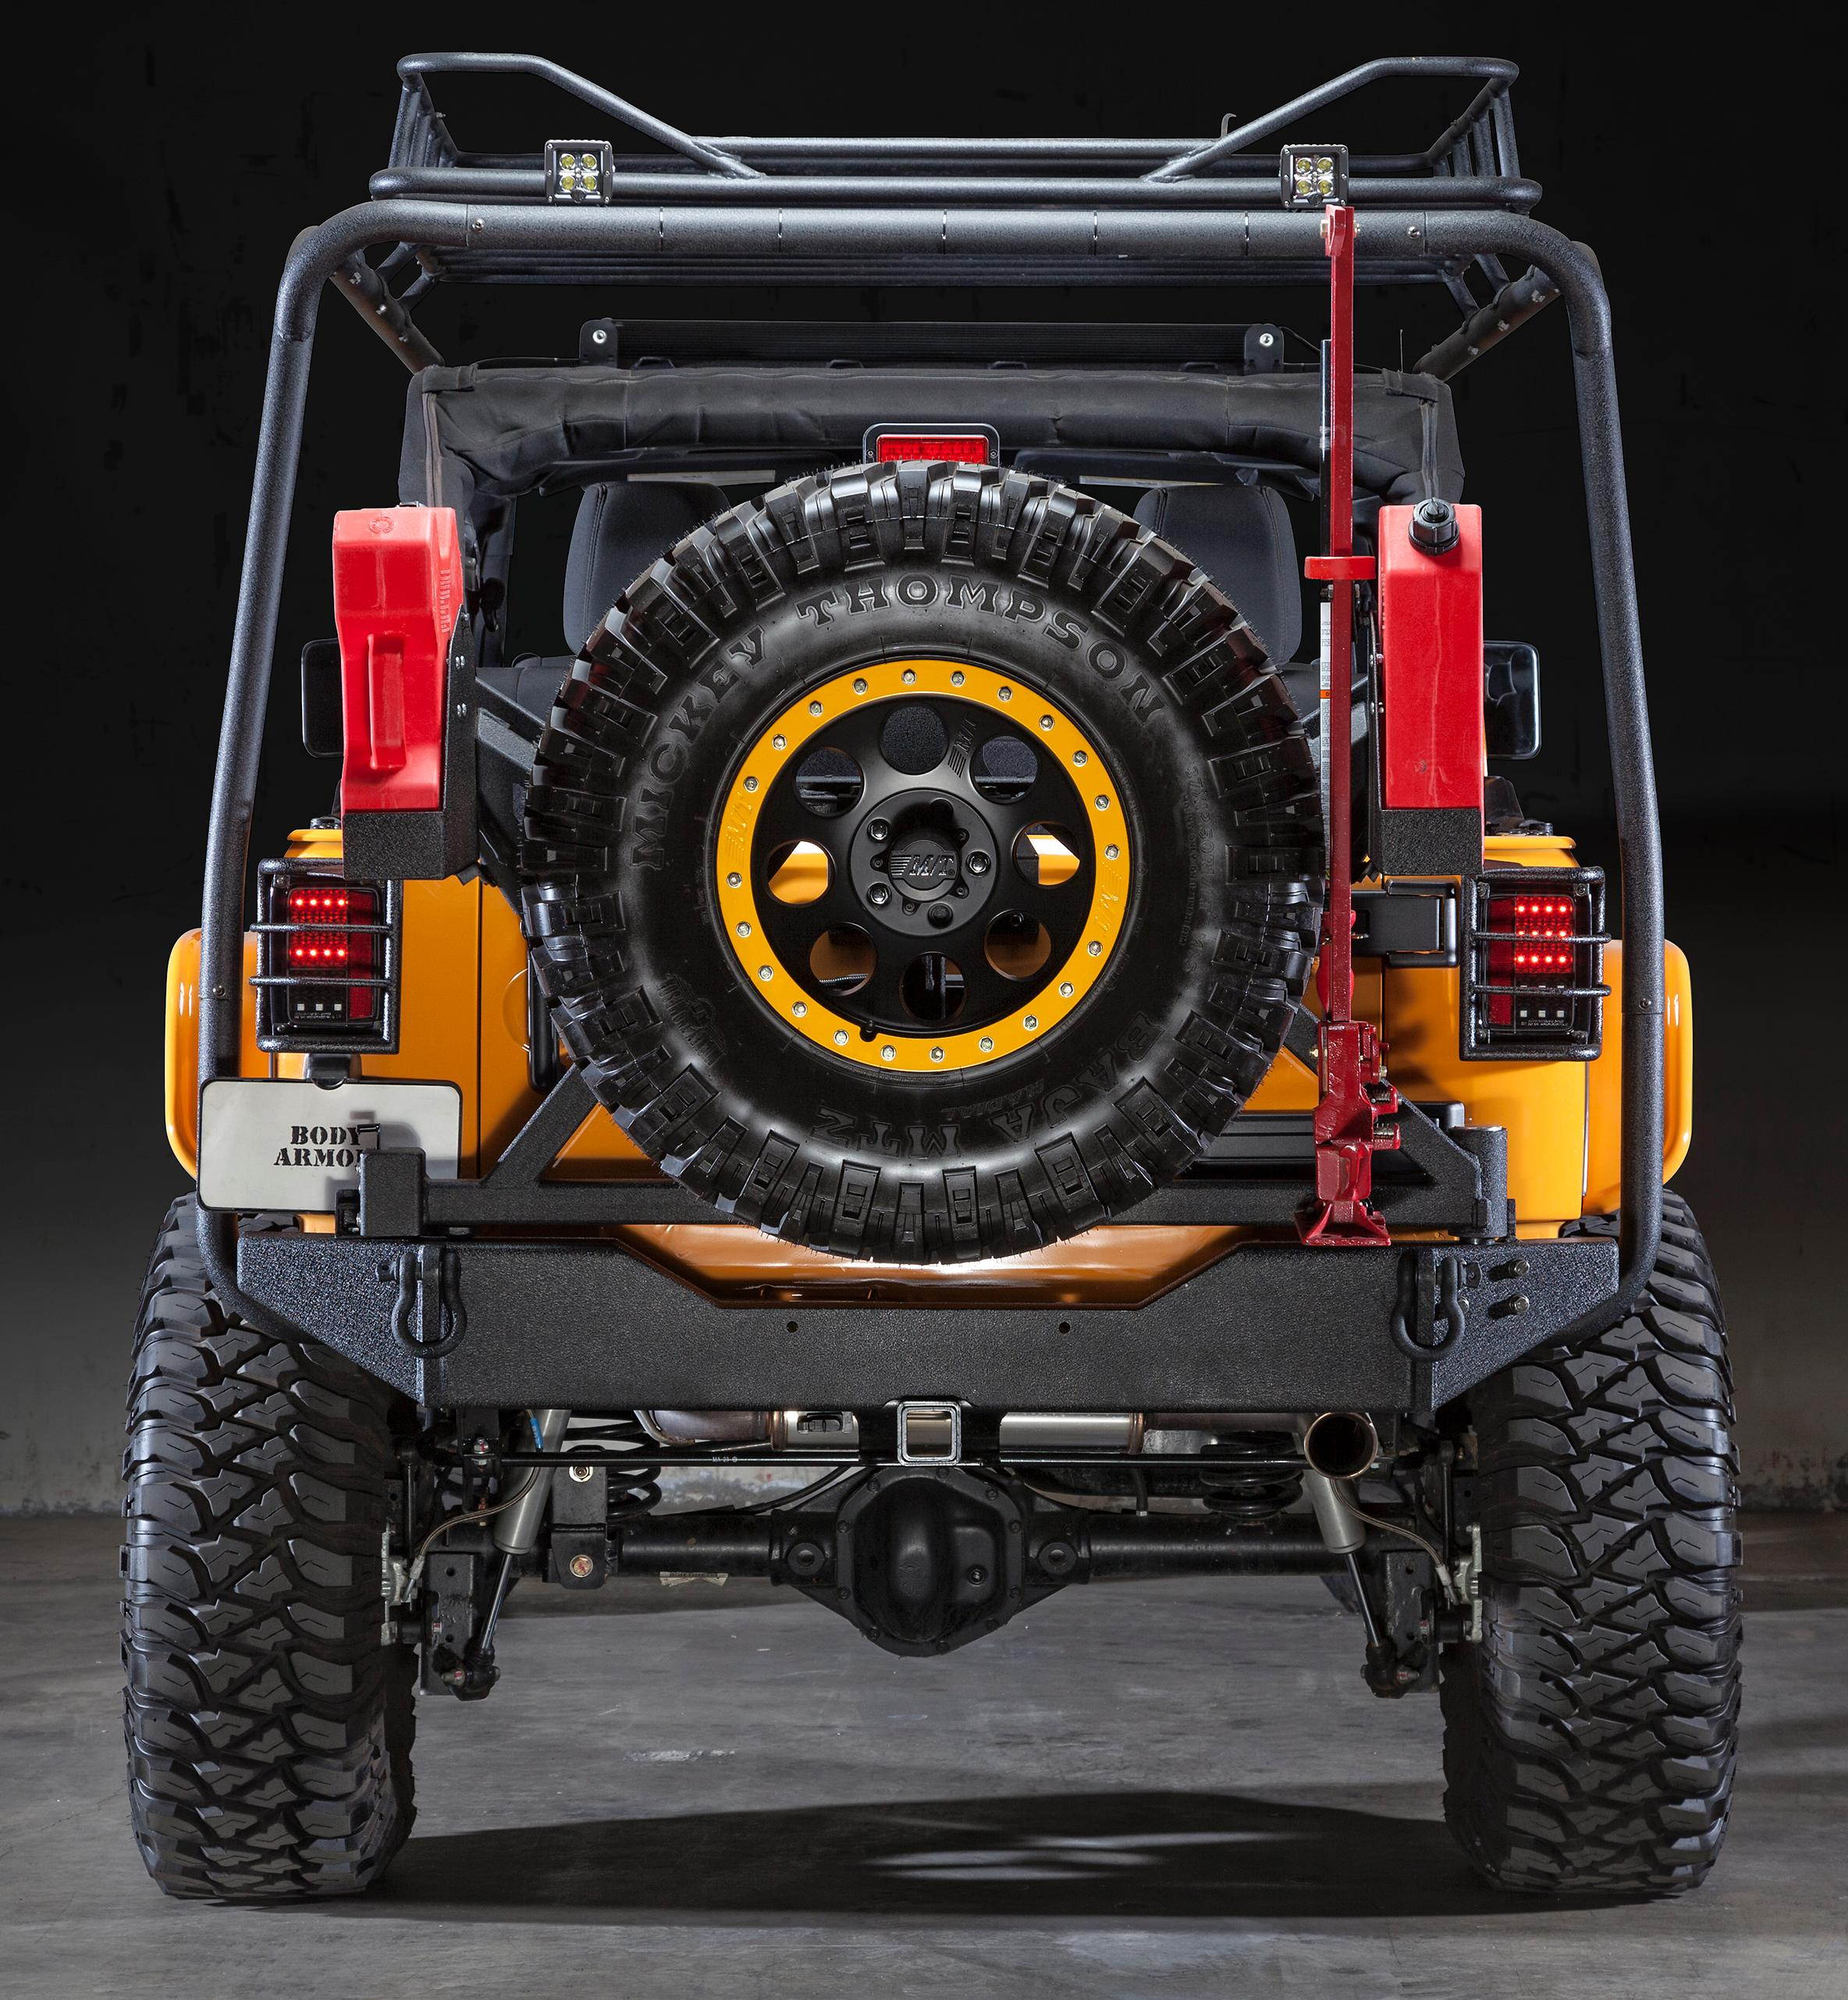 bumper jk wrangler mods ridge rear rugged jeep tires xhd shop